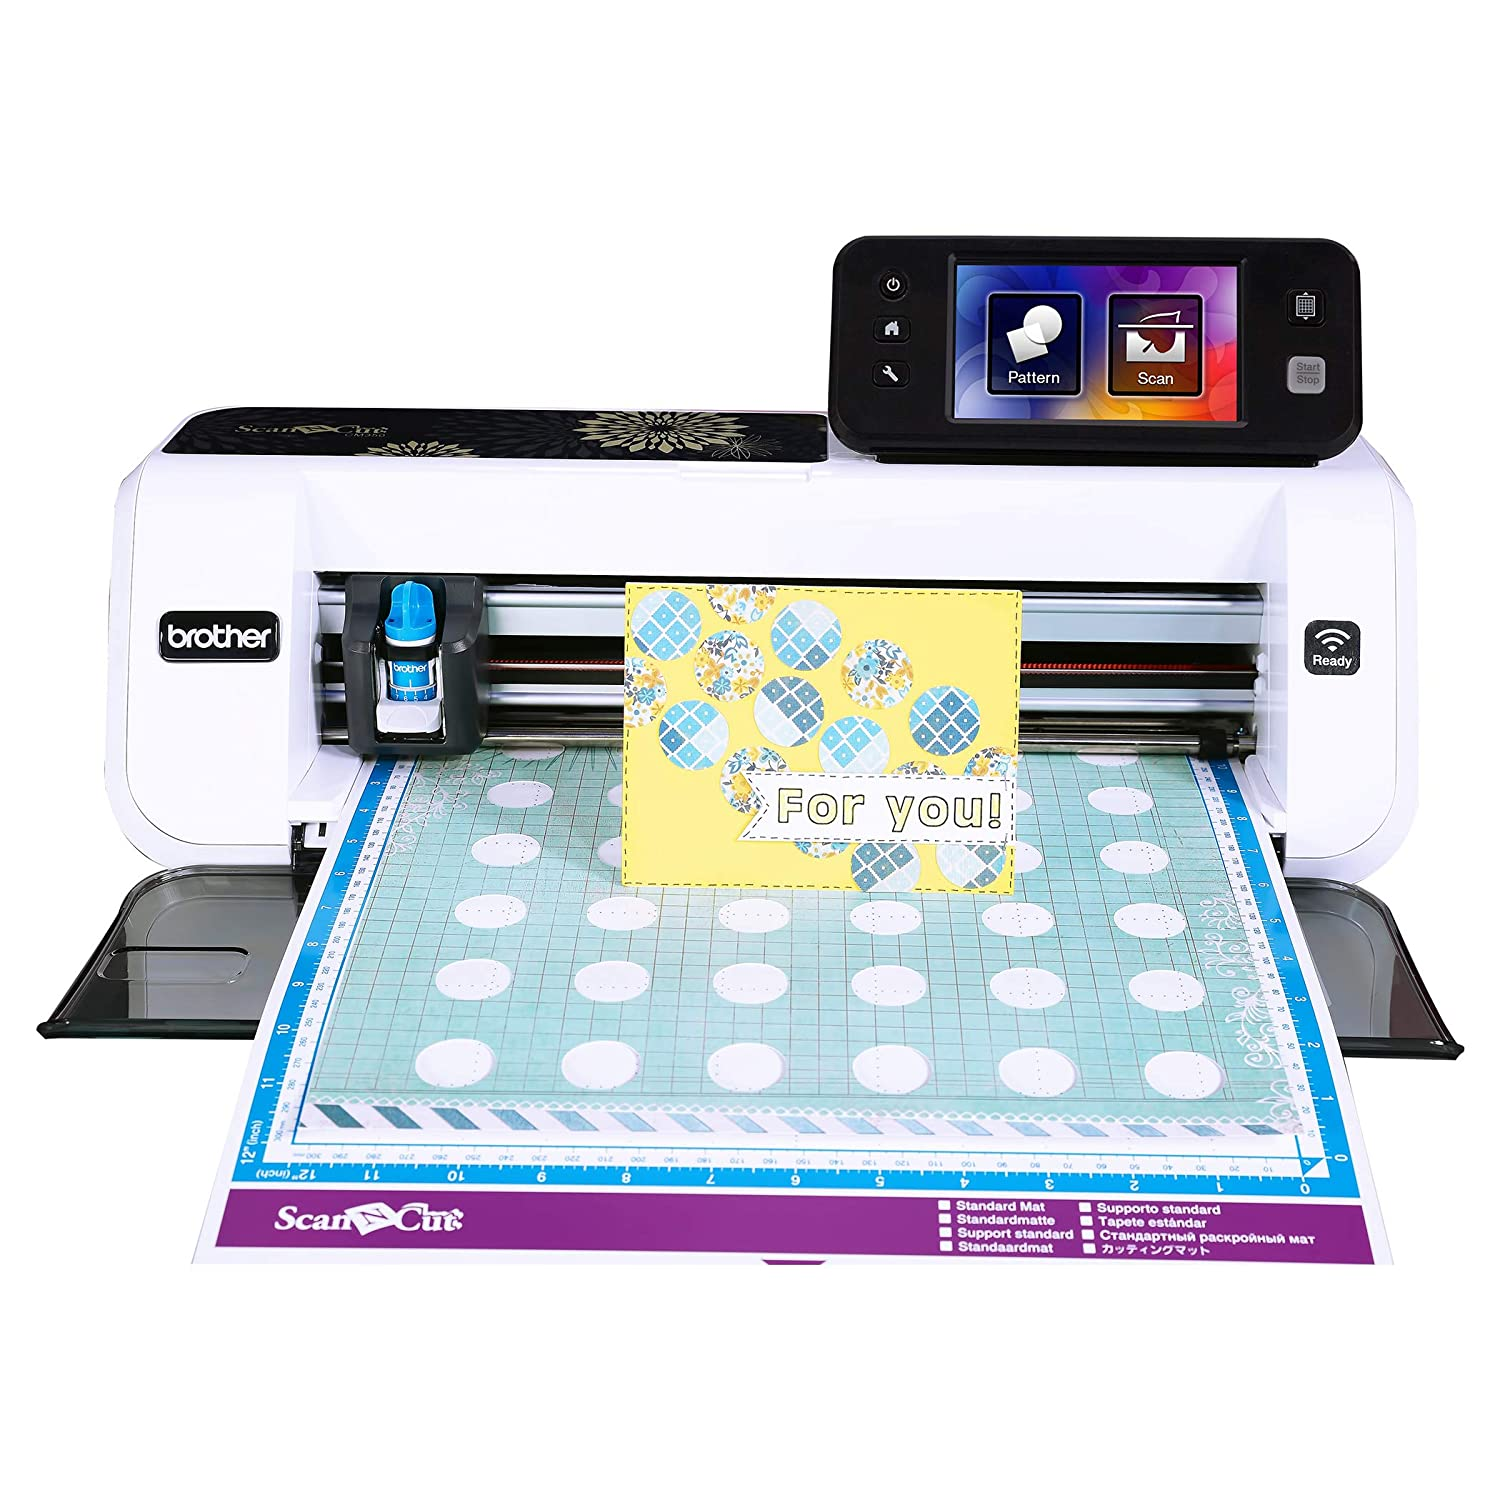 Brother Cm350 Electronic Cutting Machine Scanncut2 Heavy Duty Printed Circuit Board 485 Lcd Touch Screen Wireless Network Ready 300 Dpi Scanner 631 Built In Designs